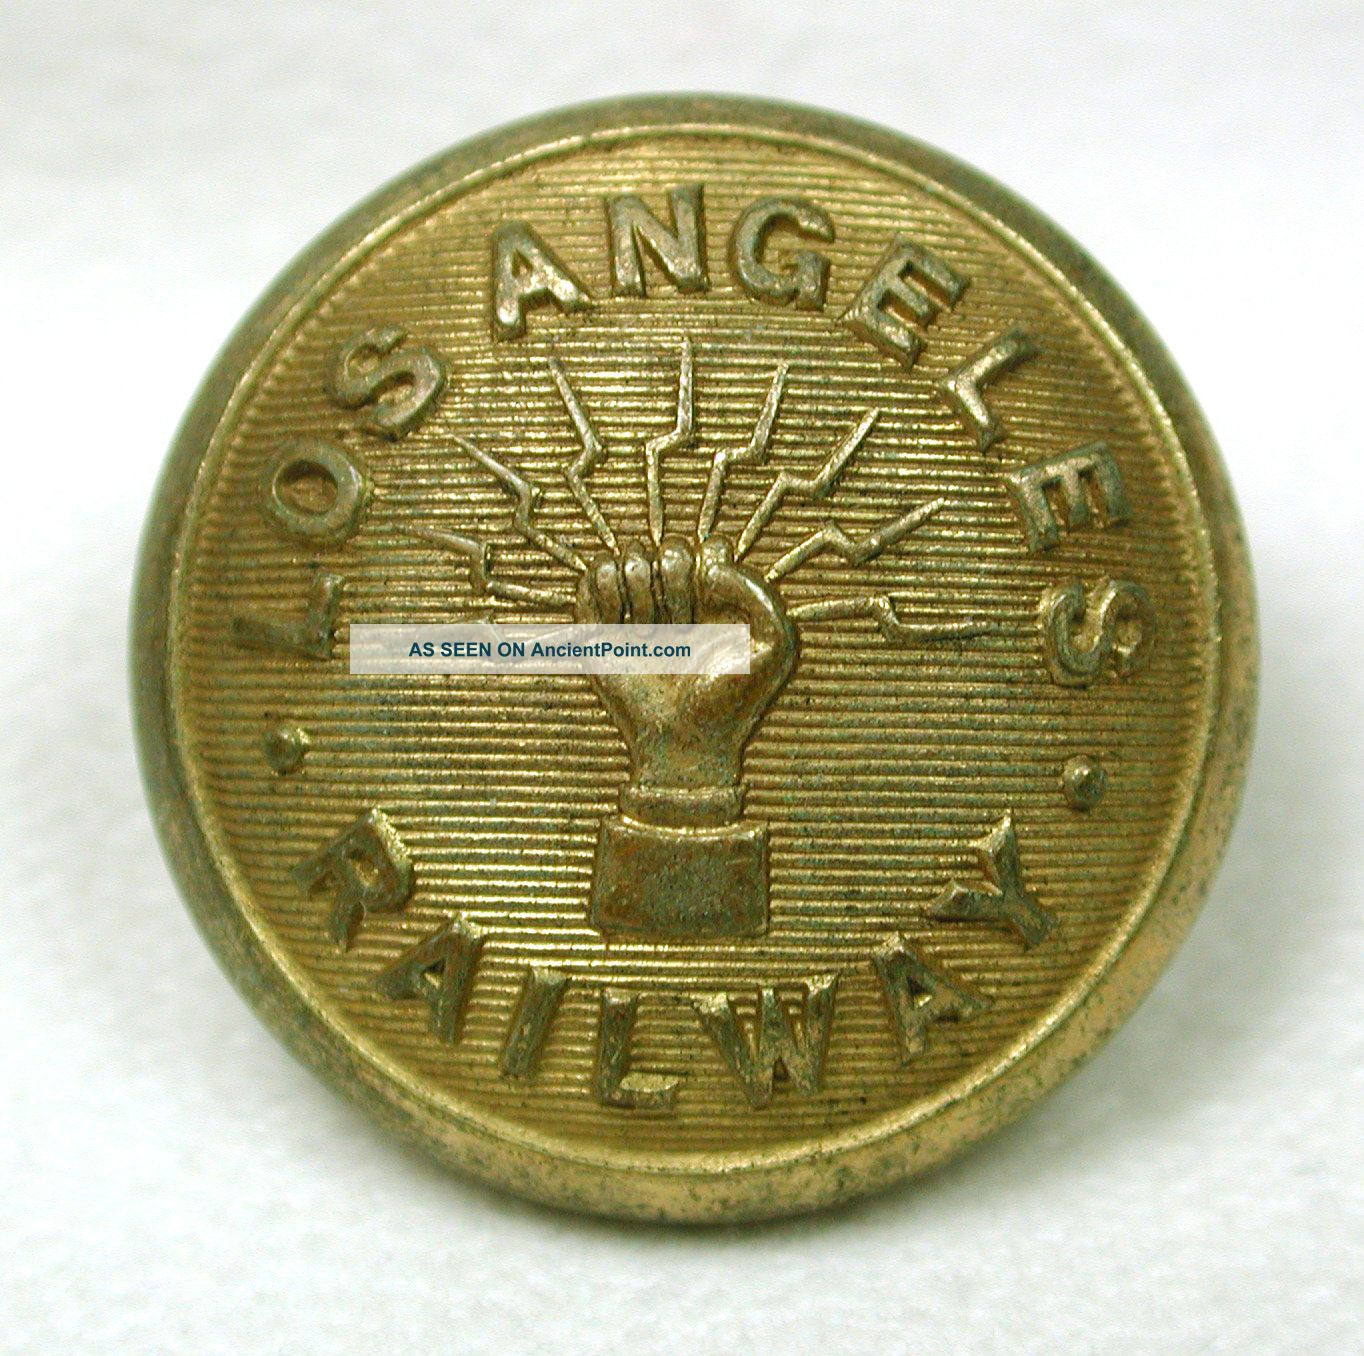 Antique Railroad Button Los Angeles Railway Design Buttons photo